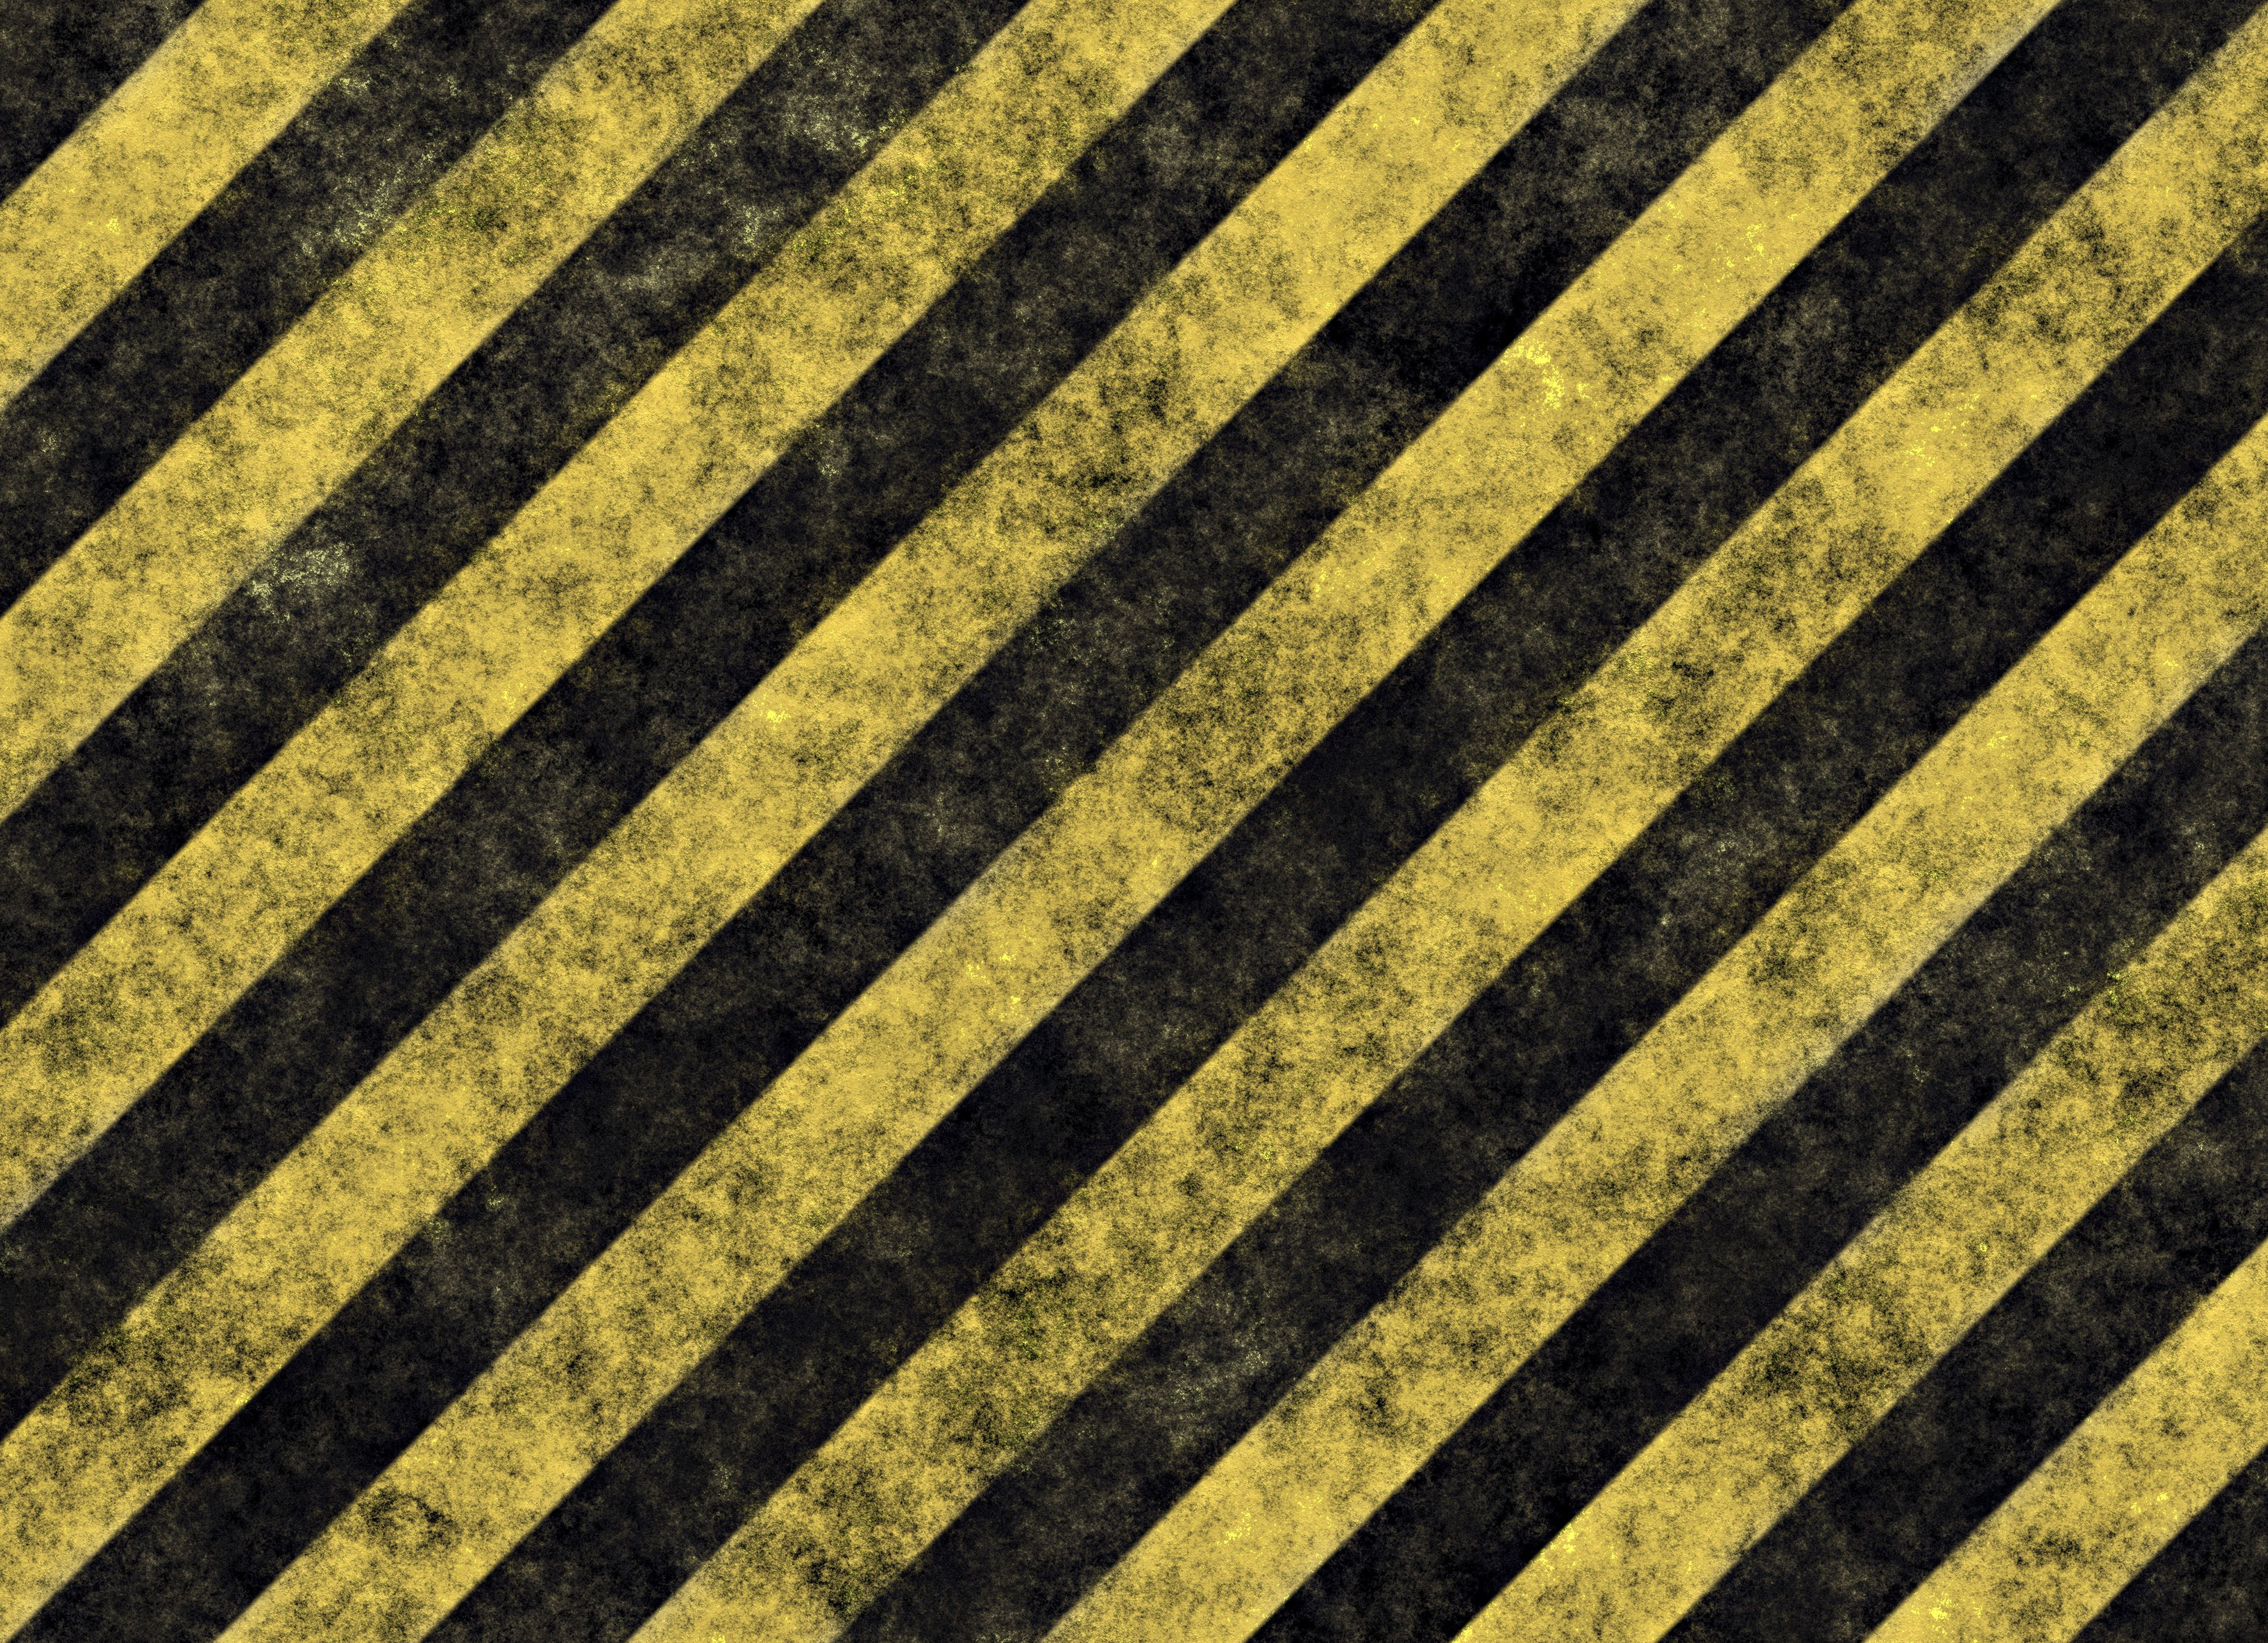 And black diagonal stripes background seamless background or wallpaper - Find This Pin And More On Wallpaper Pattern Texture Grunge Yellow And Black Hazard Stripes